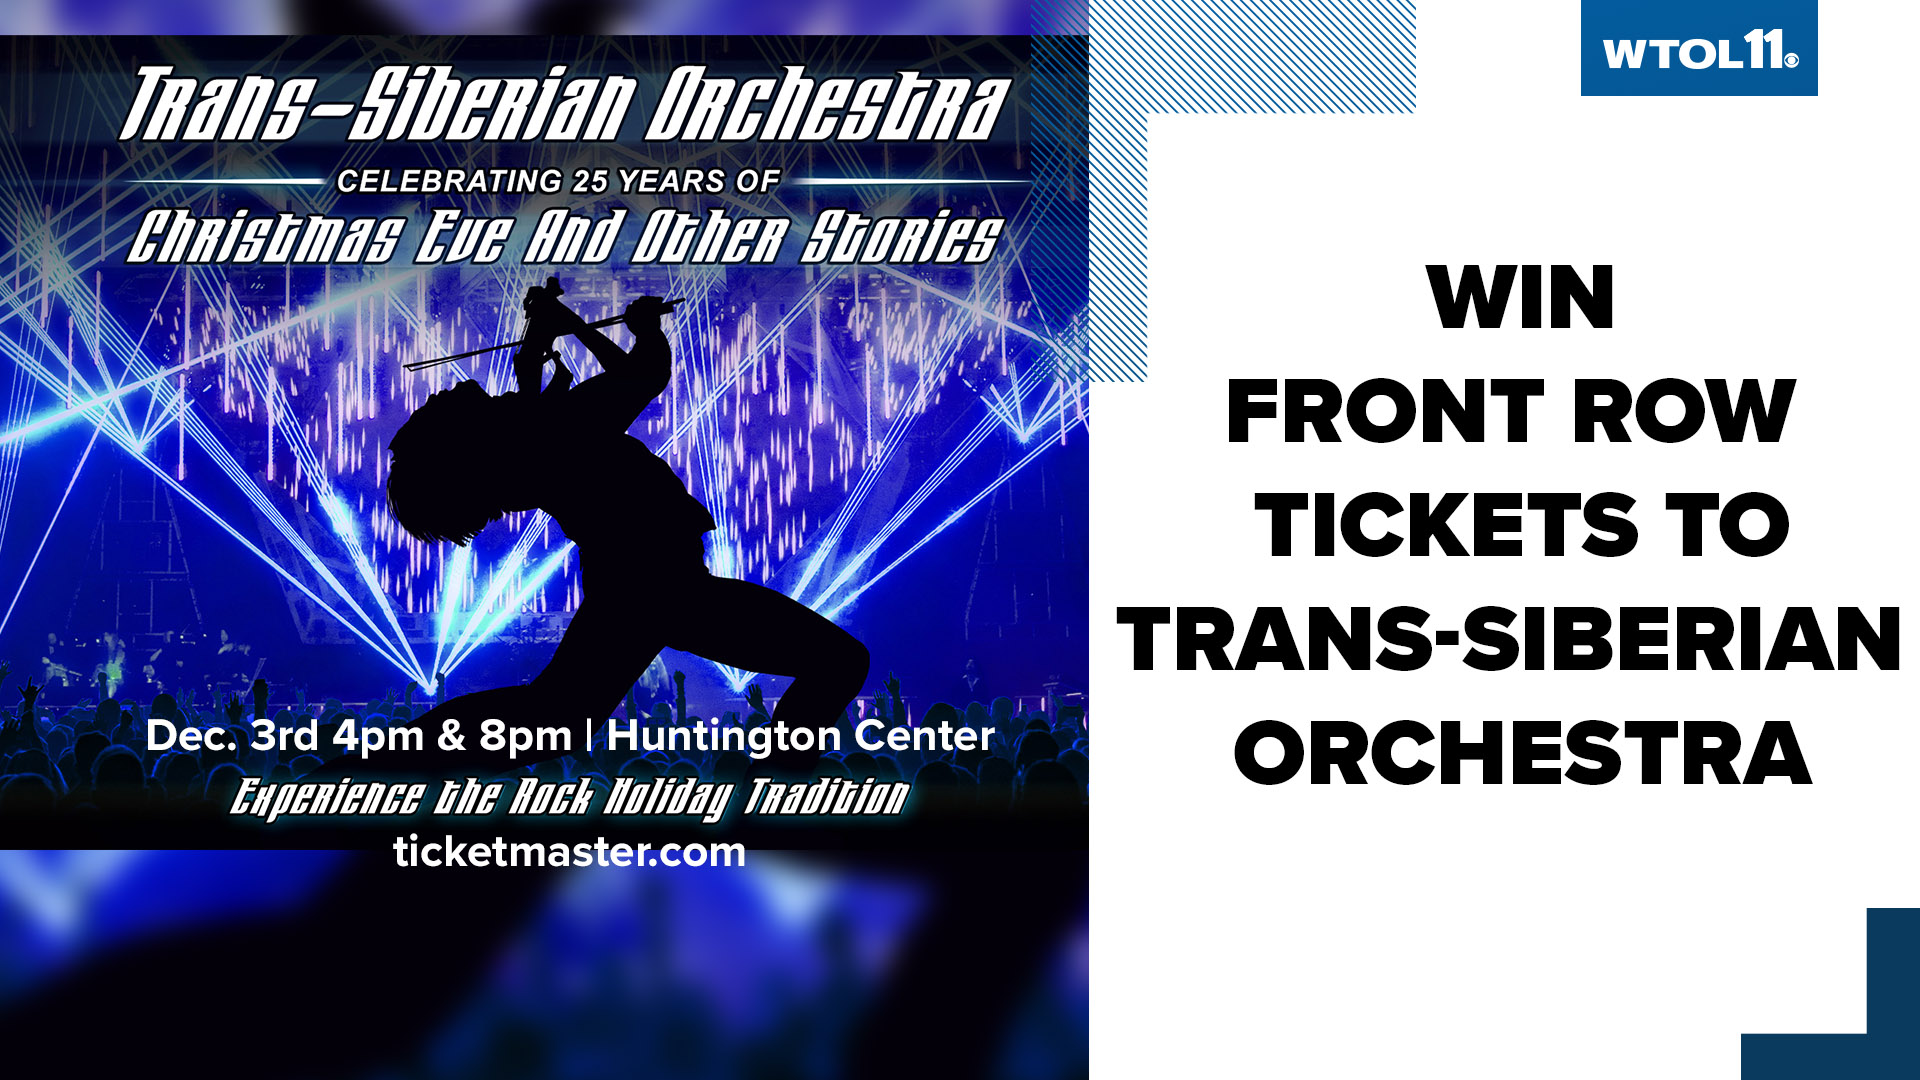 Win Front Row Tickets to Trans-Siberian Orchestra